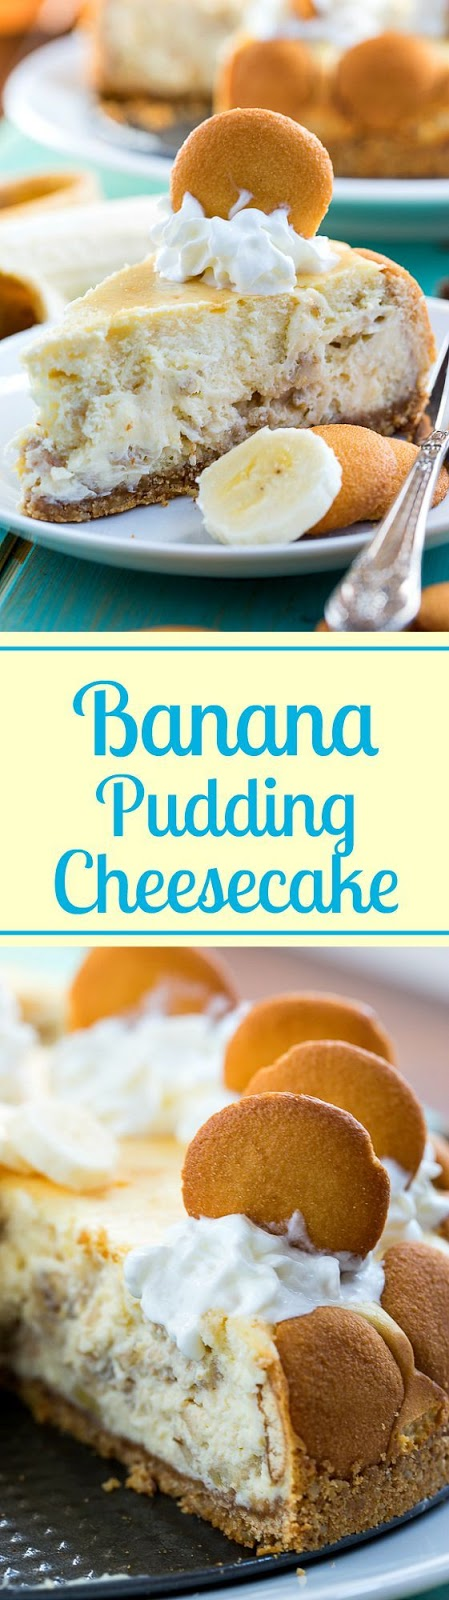 ★★★★☆ 7561 ratings | Banana Pudding Cheesecake #HEALTHYFOOD #EASYRECIPES #DINNER #LAUCH #DELICIOUS #EASY #HOLIDAYS #RECIPE #Banana #Pudding #Cheesecake